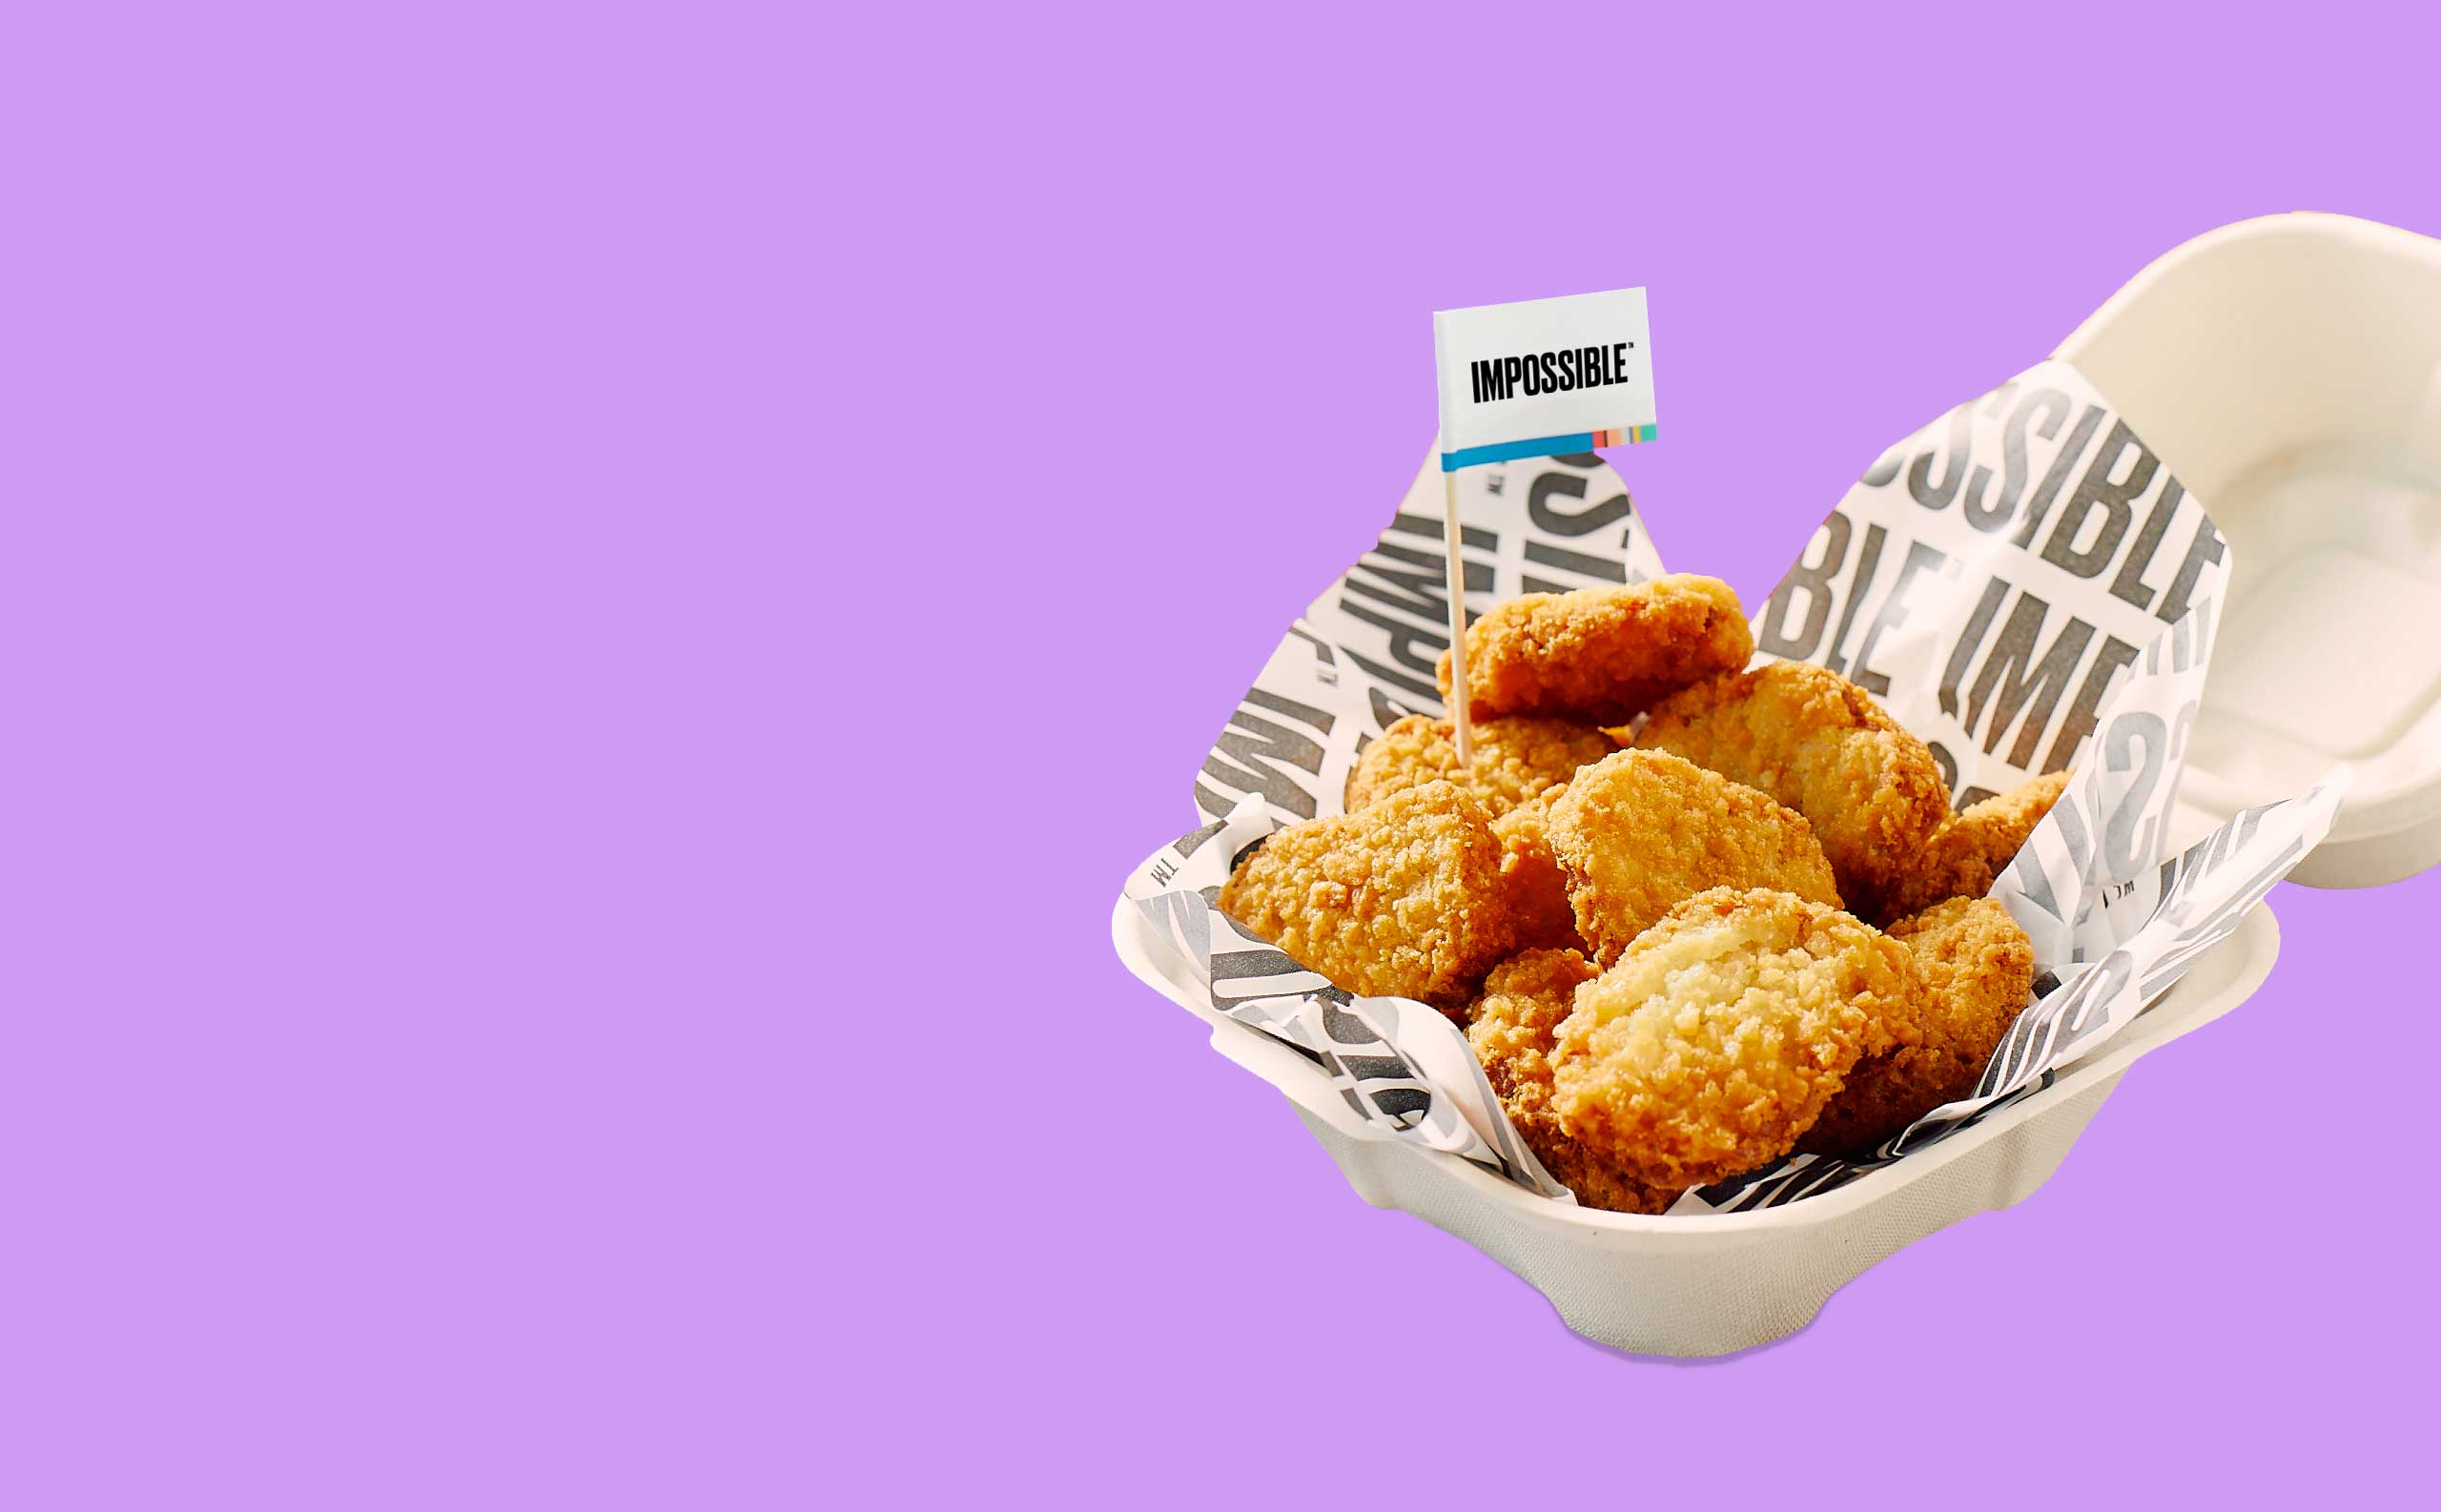 Impossible Chicken Nuggets with an Impossible toothpick flag in a takeout container on a purple background